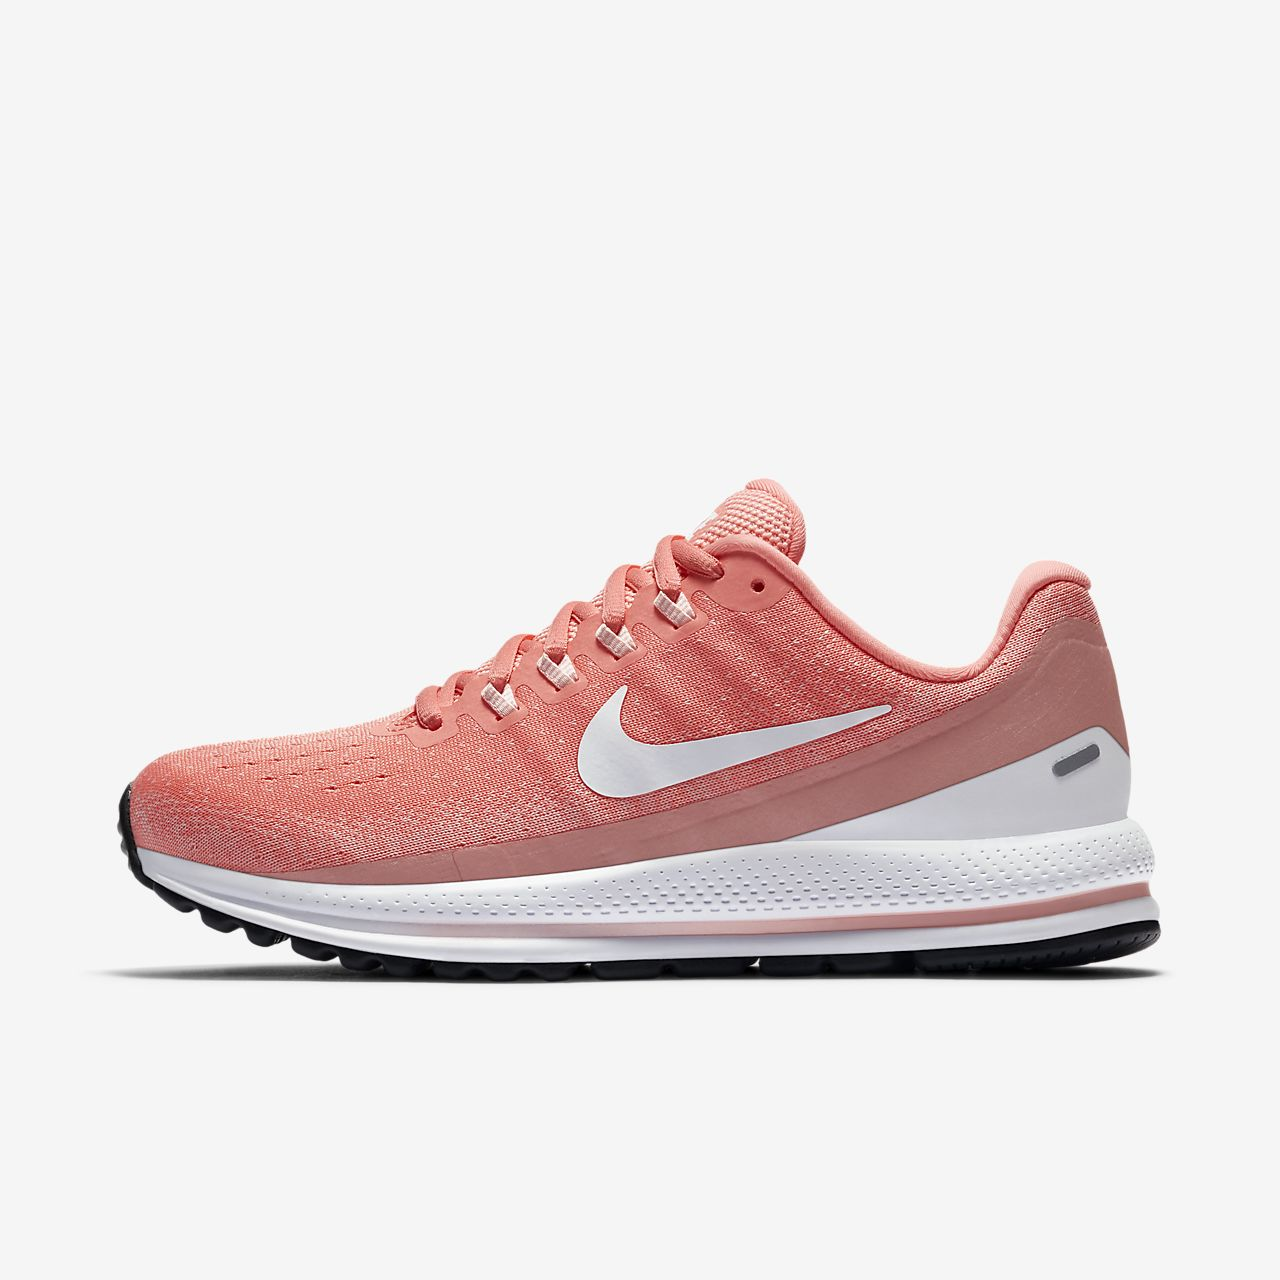 Nike Air Zoom Vomero 13 Light Atomic Pink Bleached Coral White 922909600